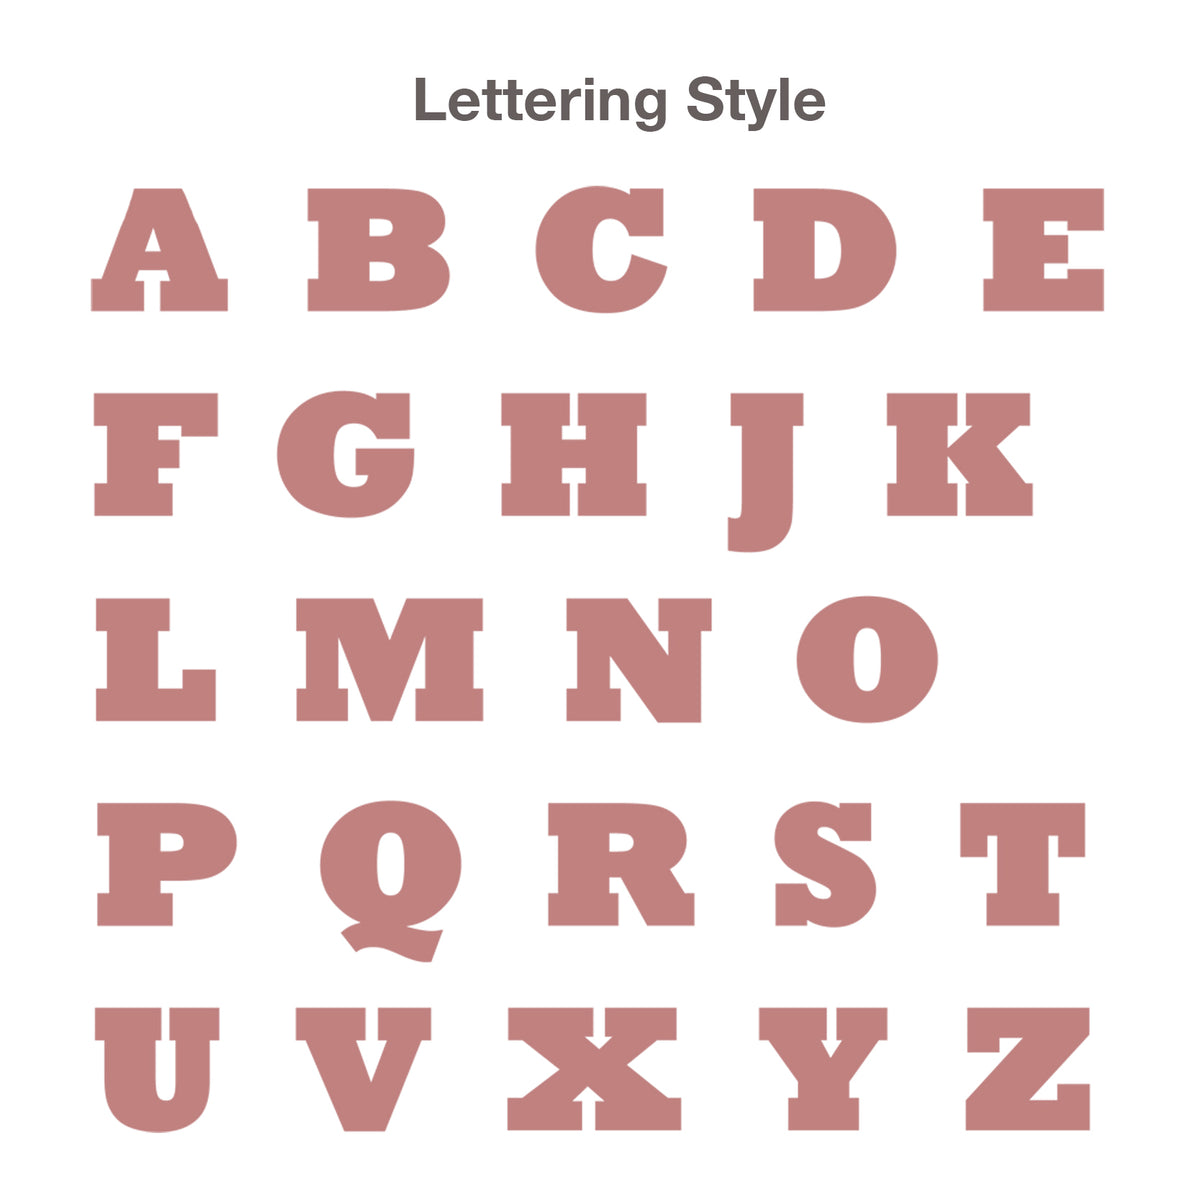 Lettering Style Chart